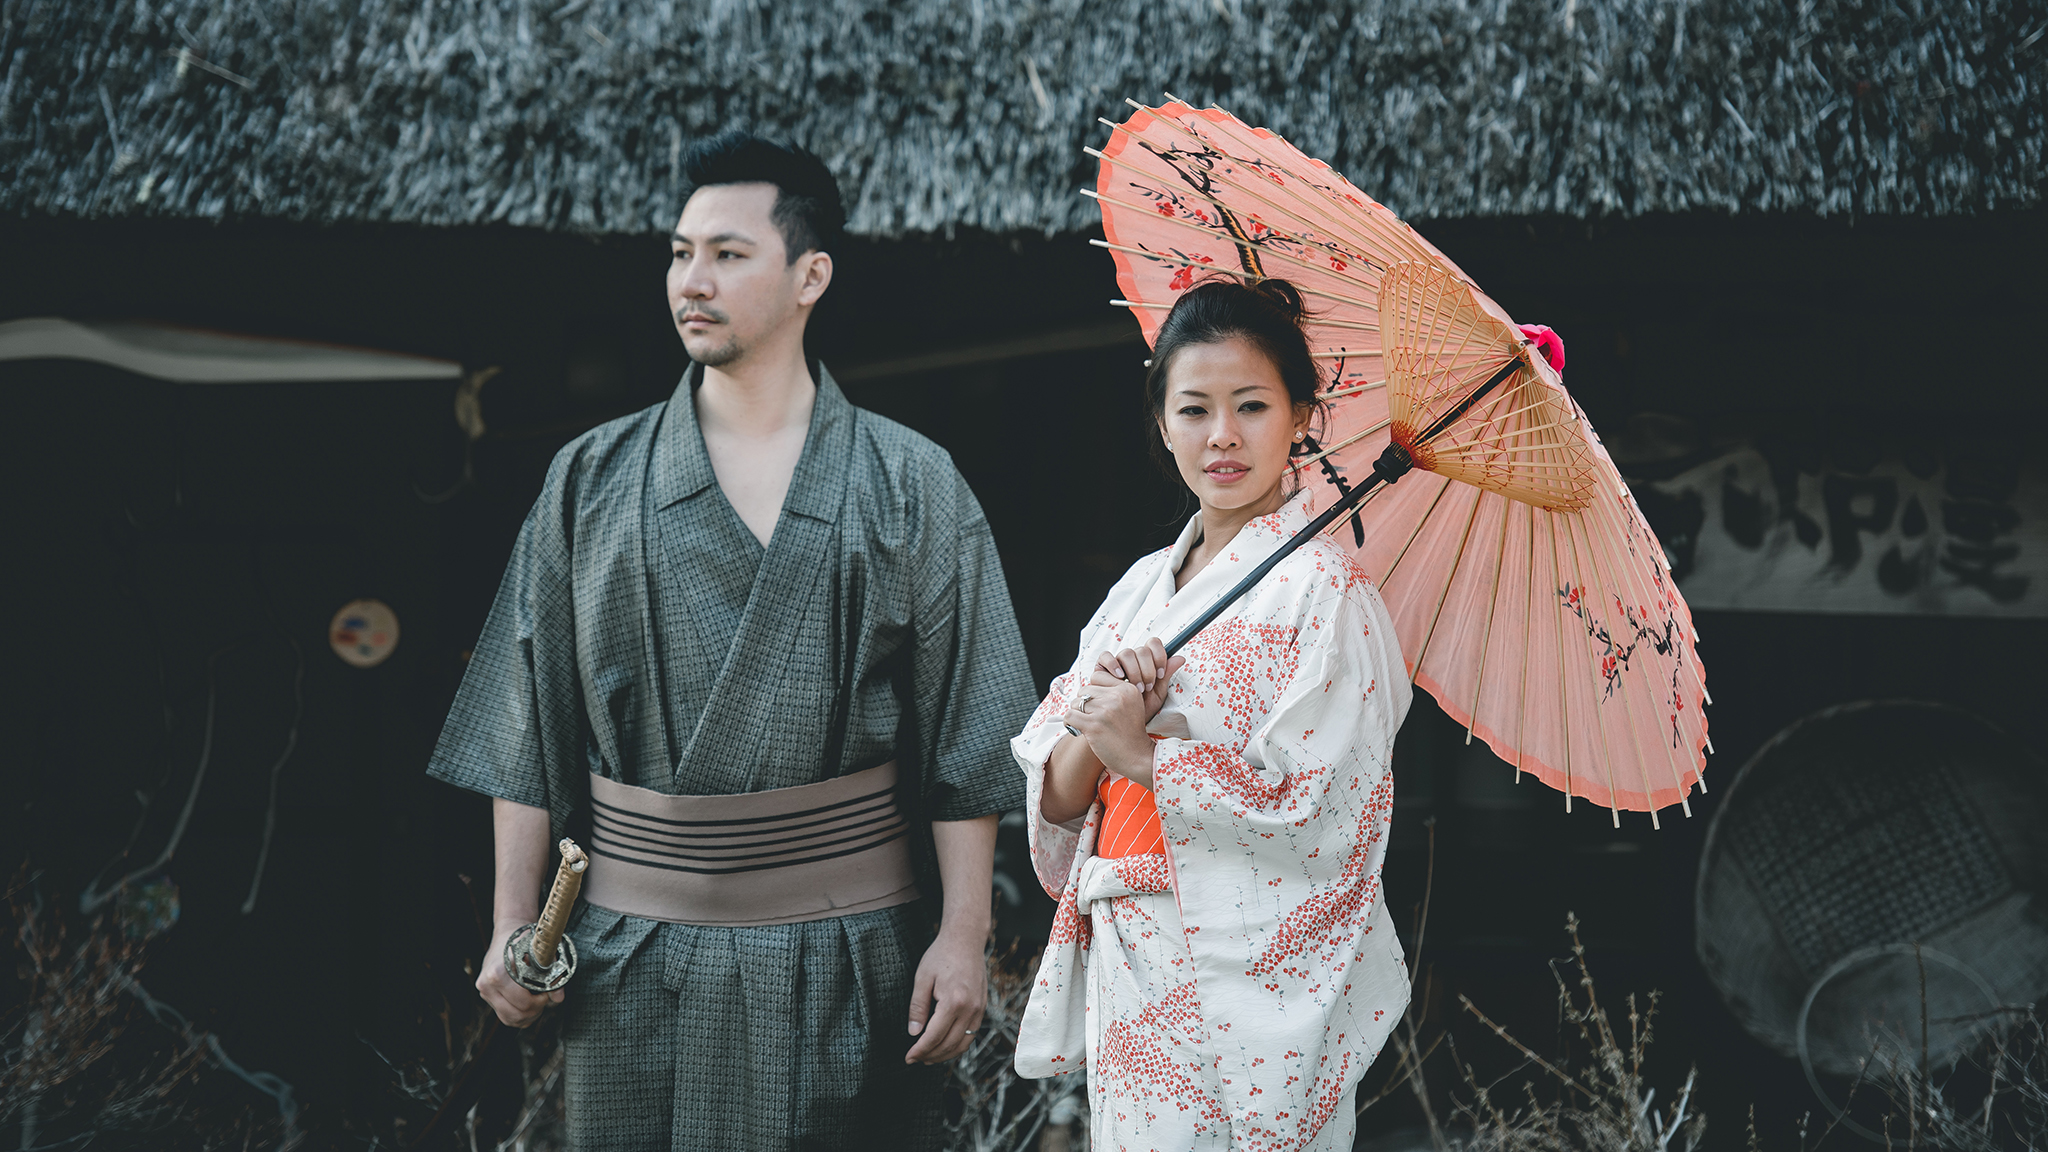 Japan Prewedding 36.JPG